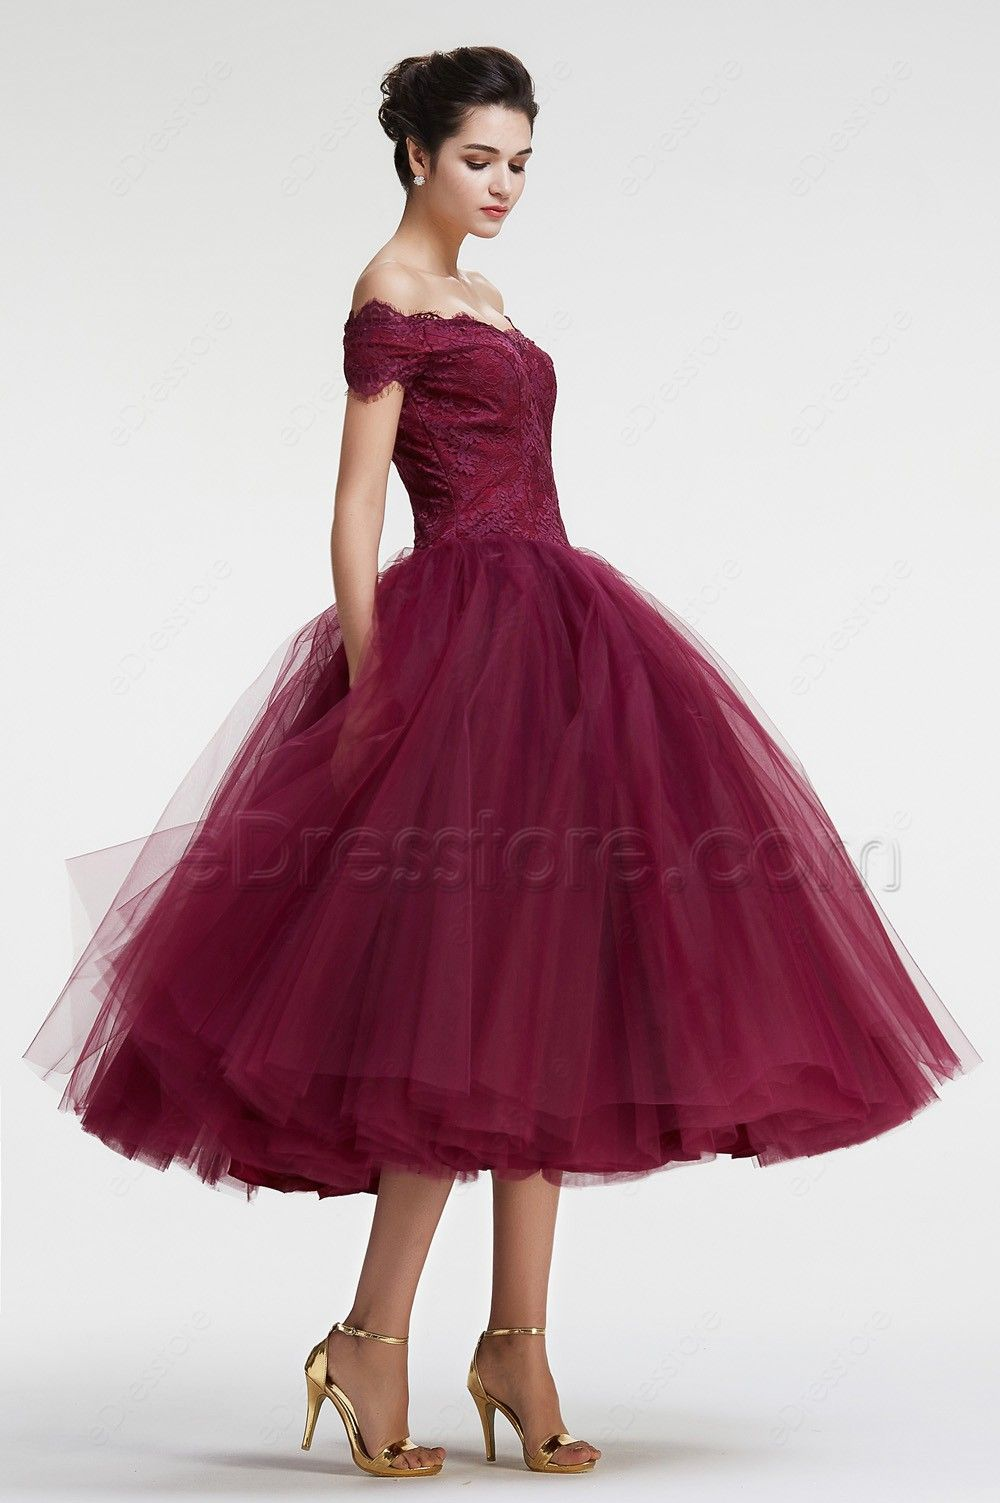 The burgundy prom dress features off the shoulder neckline with scalloped  lace 7b7ad040f445